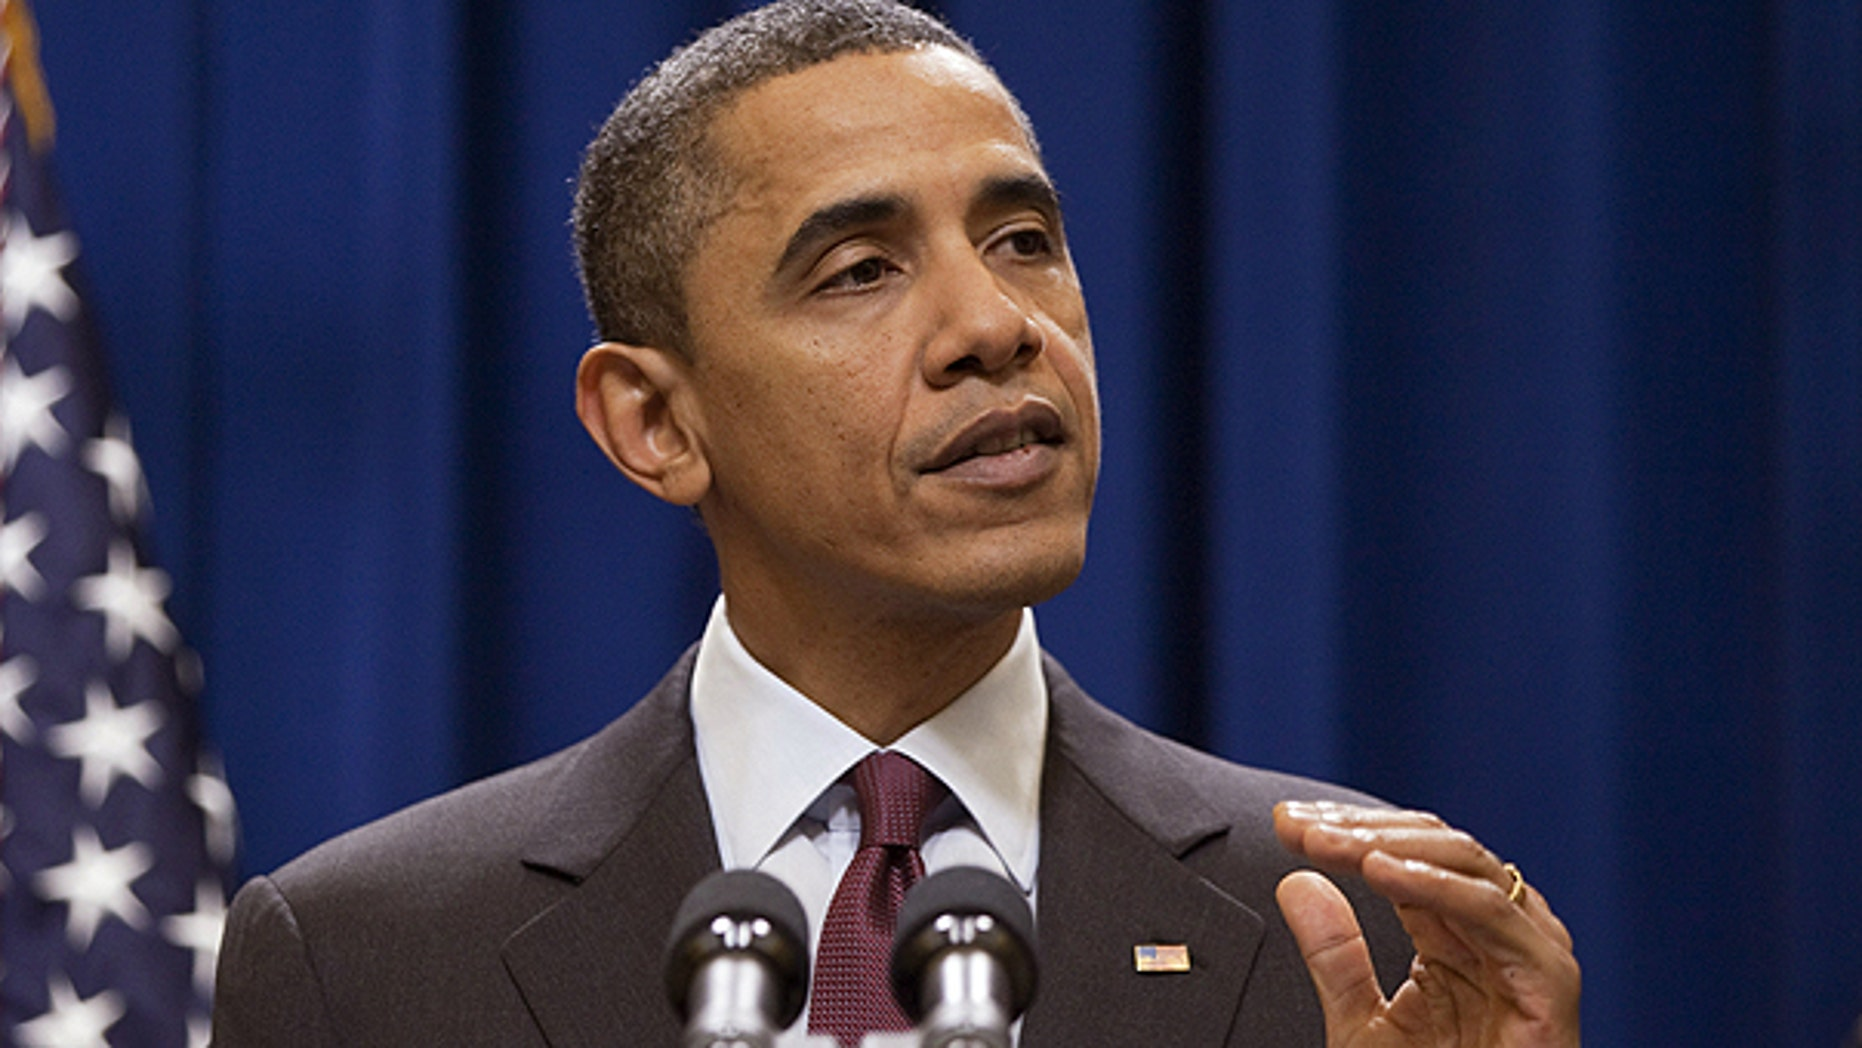 Dec. 4: President Obama gestures during a statement on the US-Korea Free Trade Agreement. Obama said he isn't happy Senate Republicans blocked legislation Saturday that would have extended tax cuts for the middle-class.